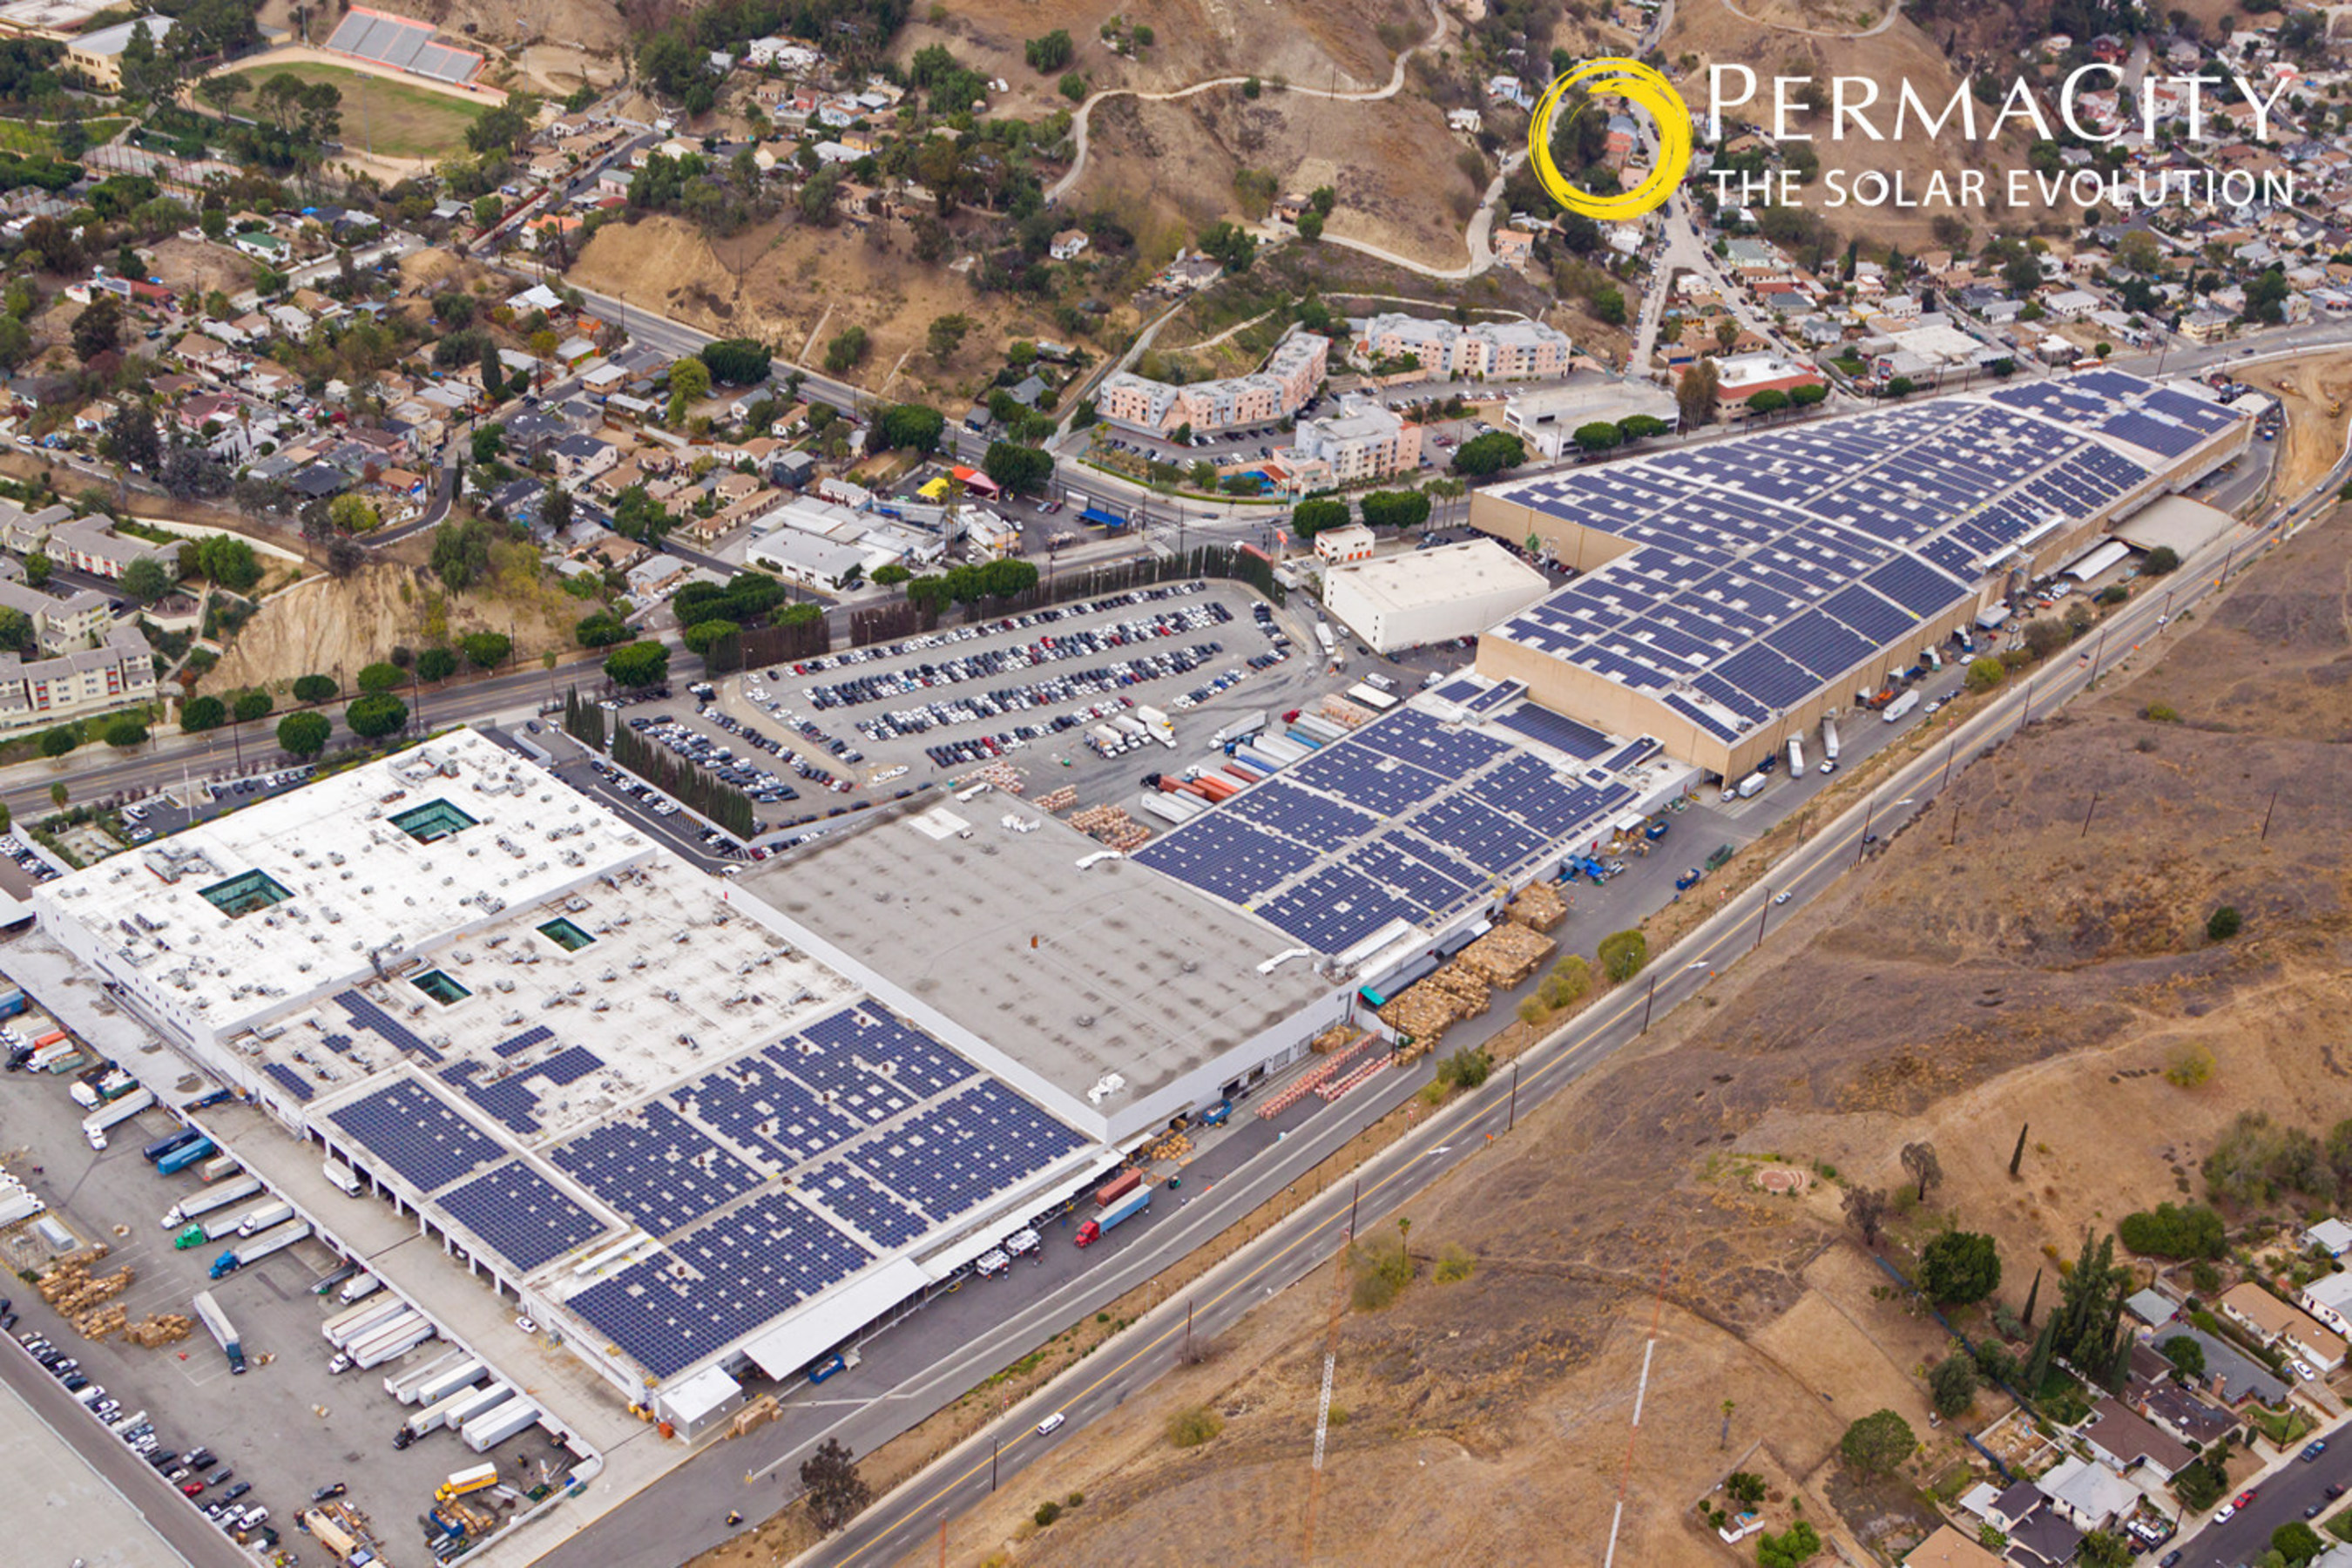 Forever 21's 5MW PermaCity Solar System